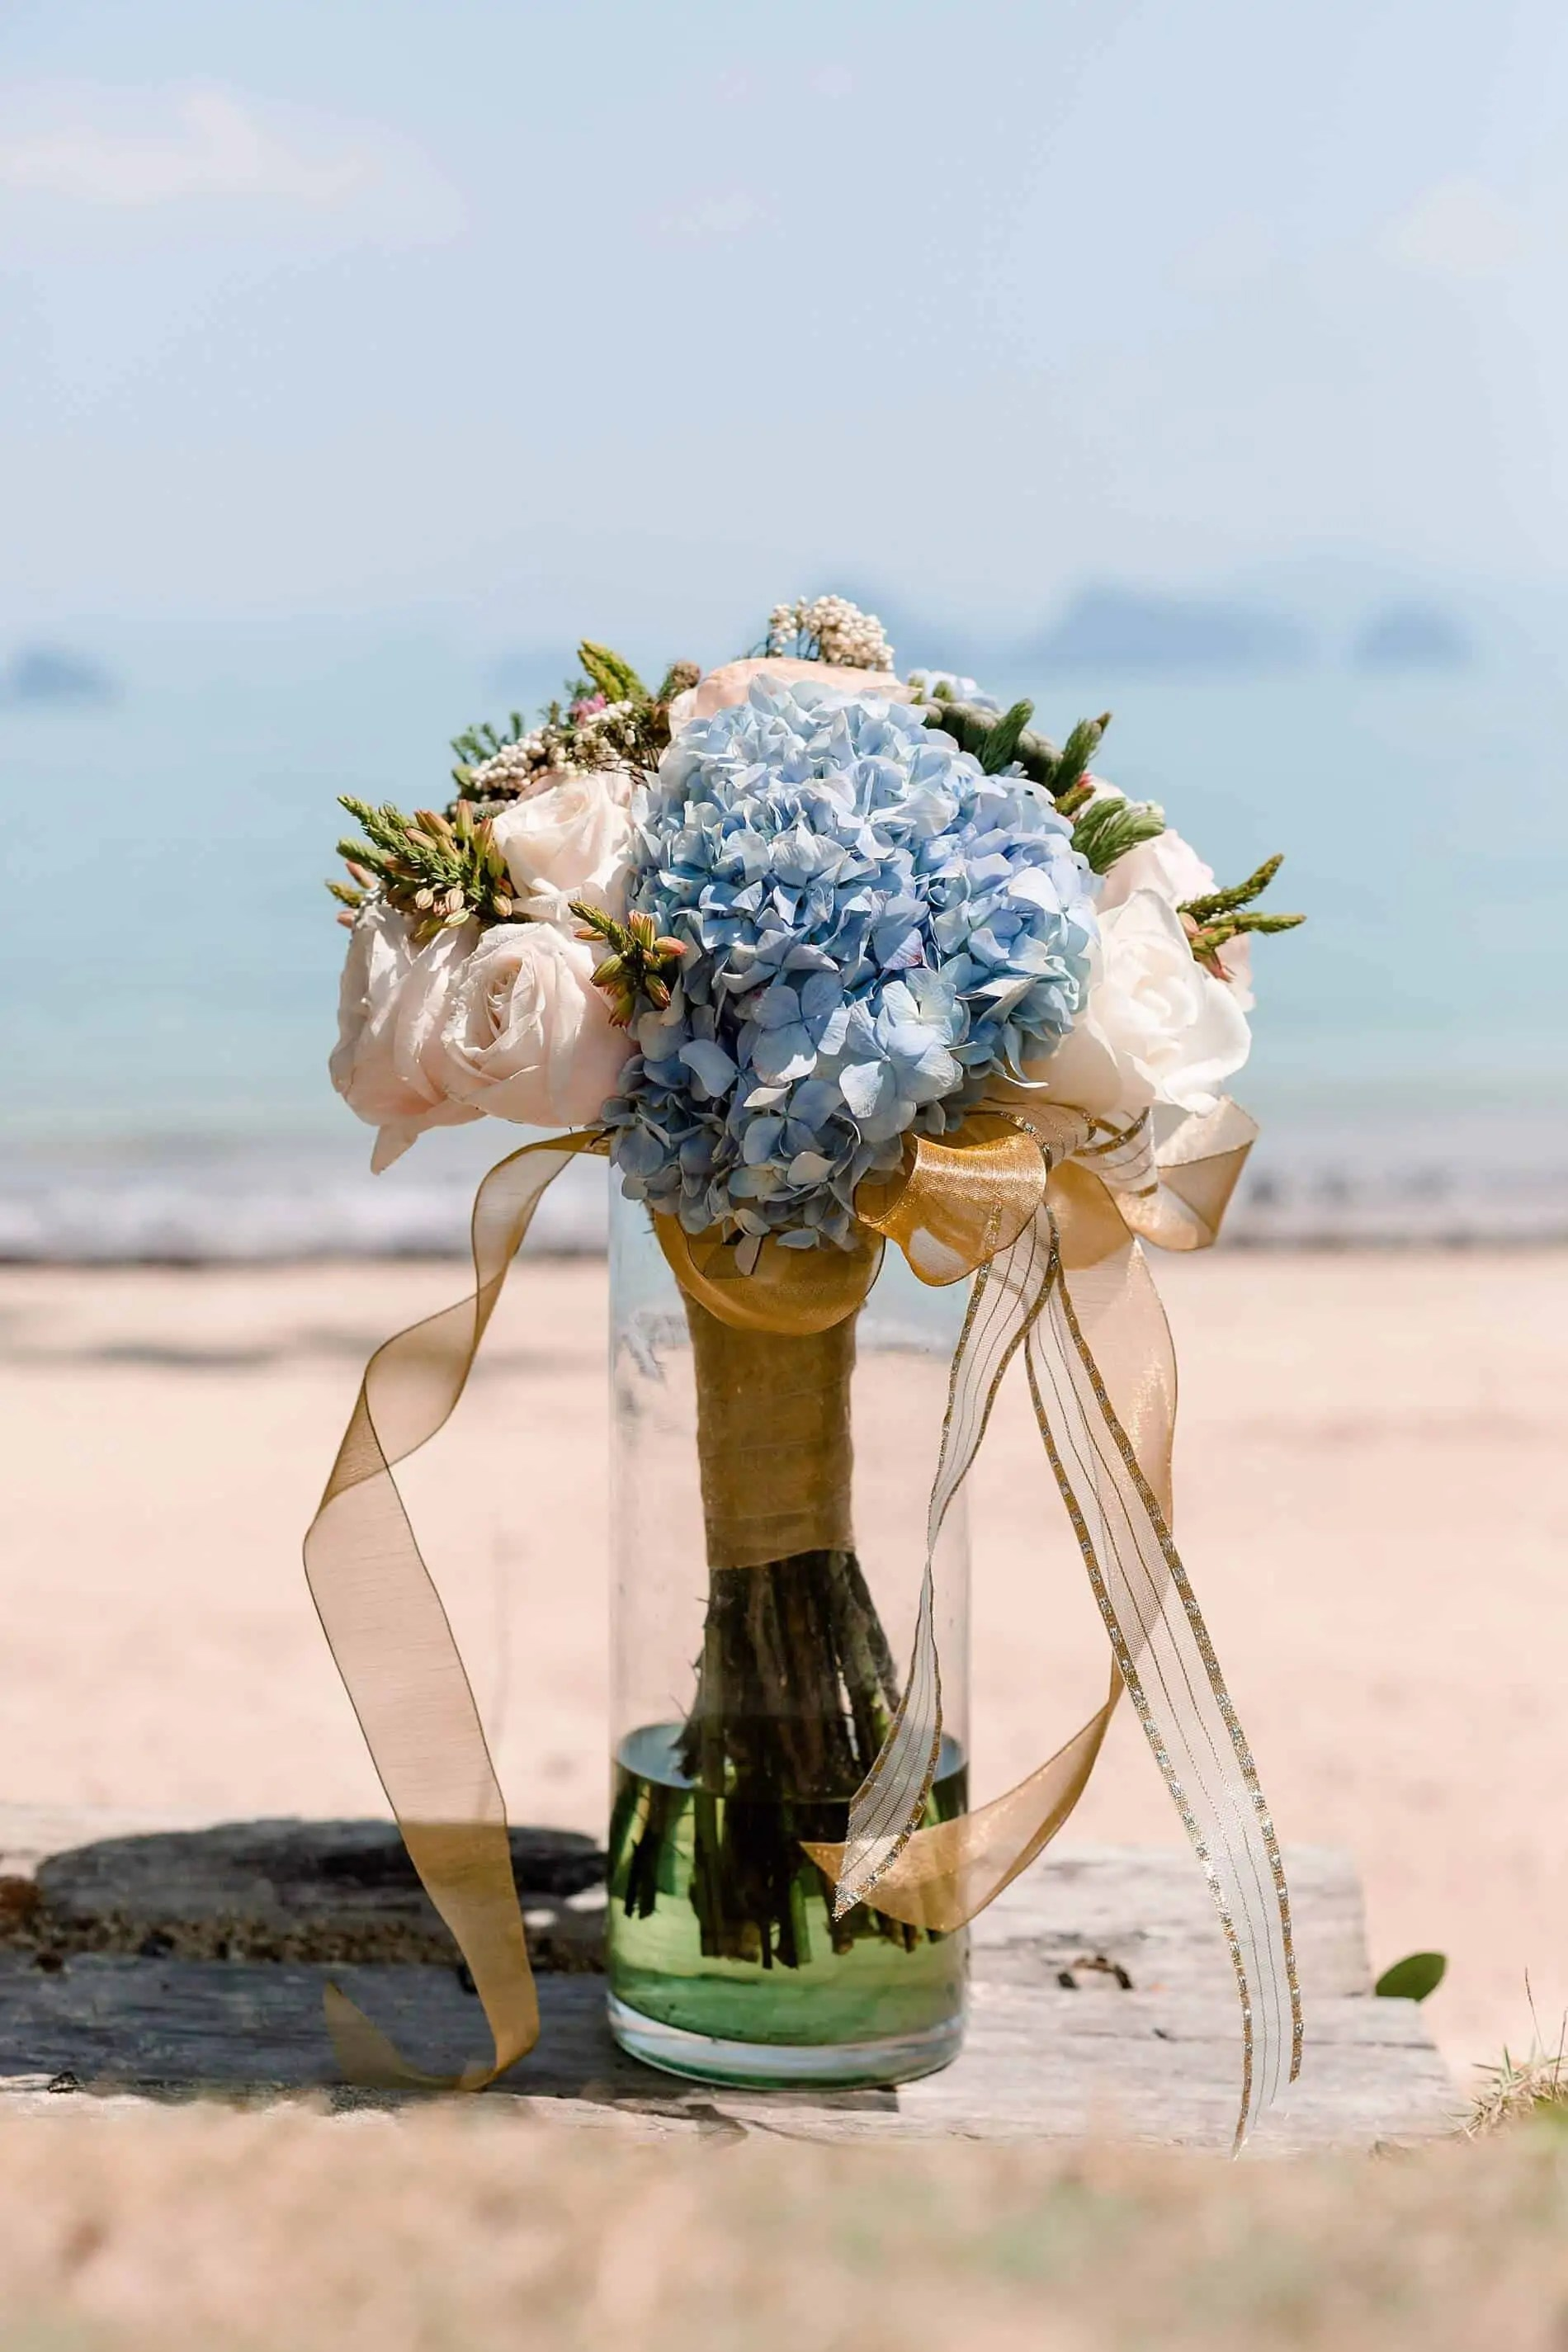 Gilles And Nicole Beach Wedding 25th Jan 2019 Laguna Villas Island 1